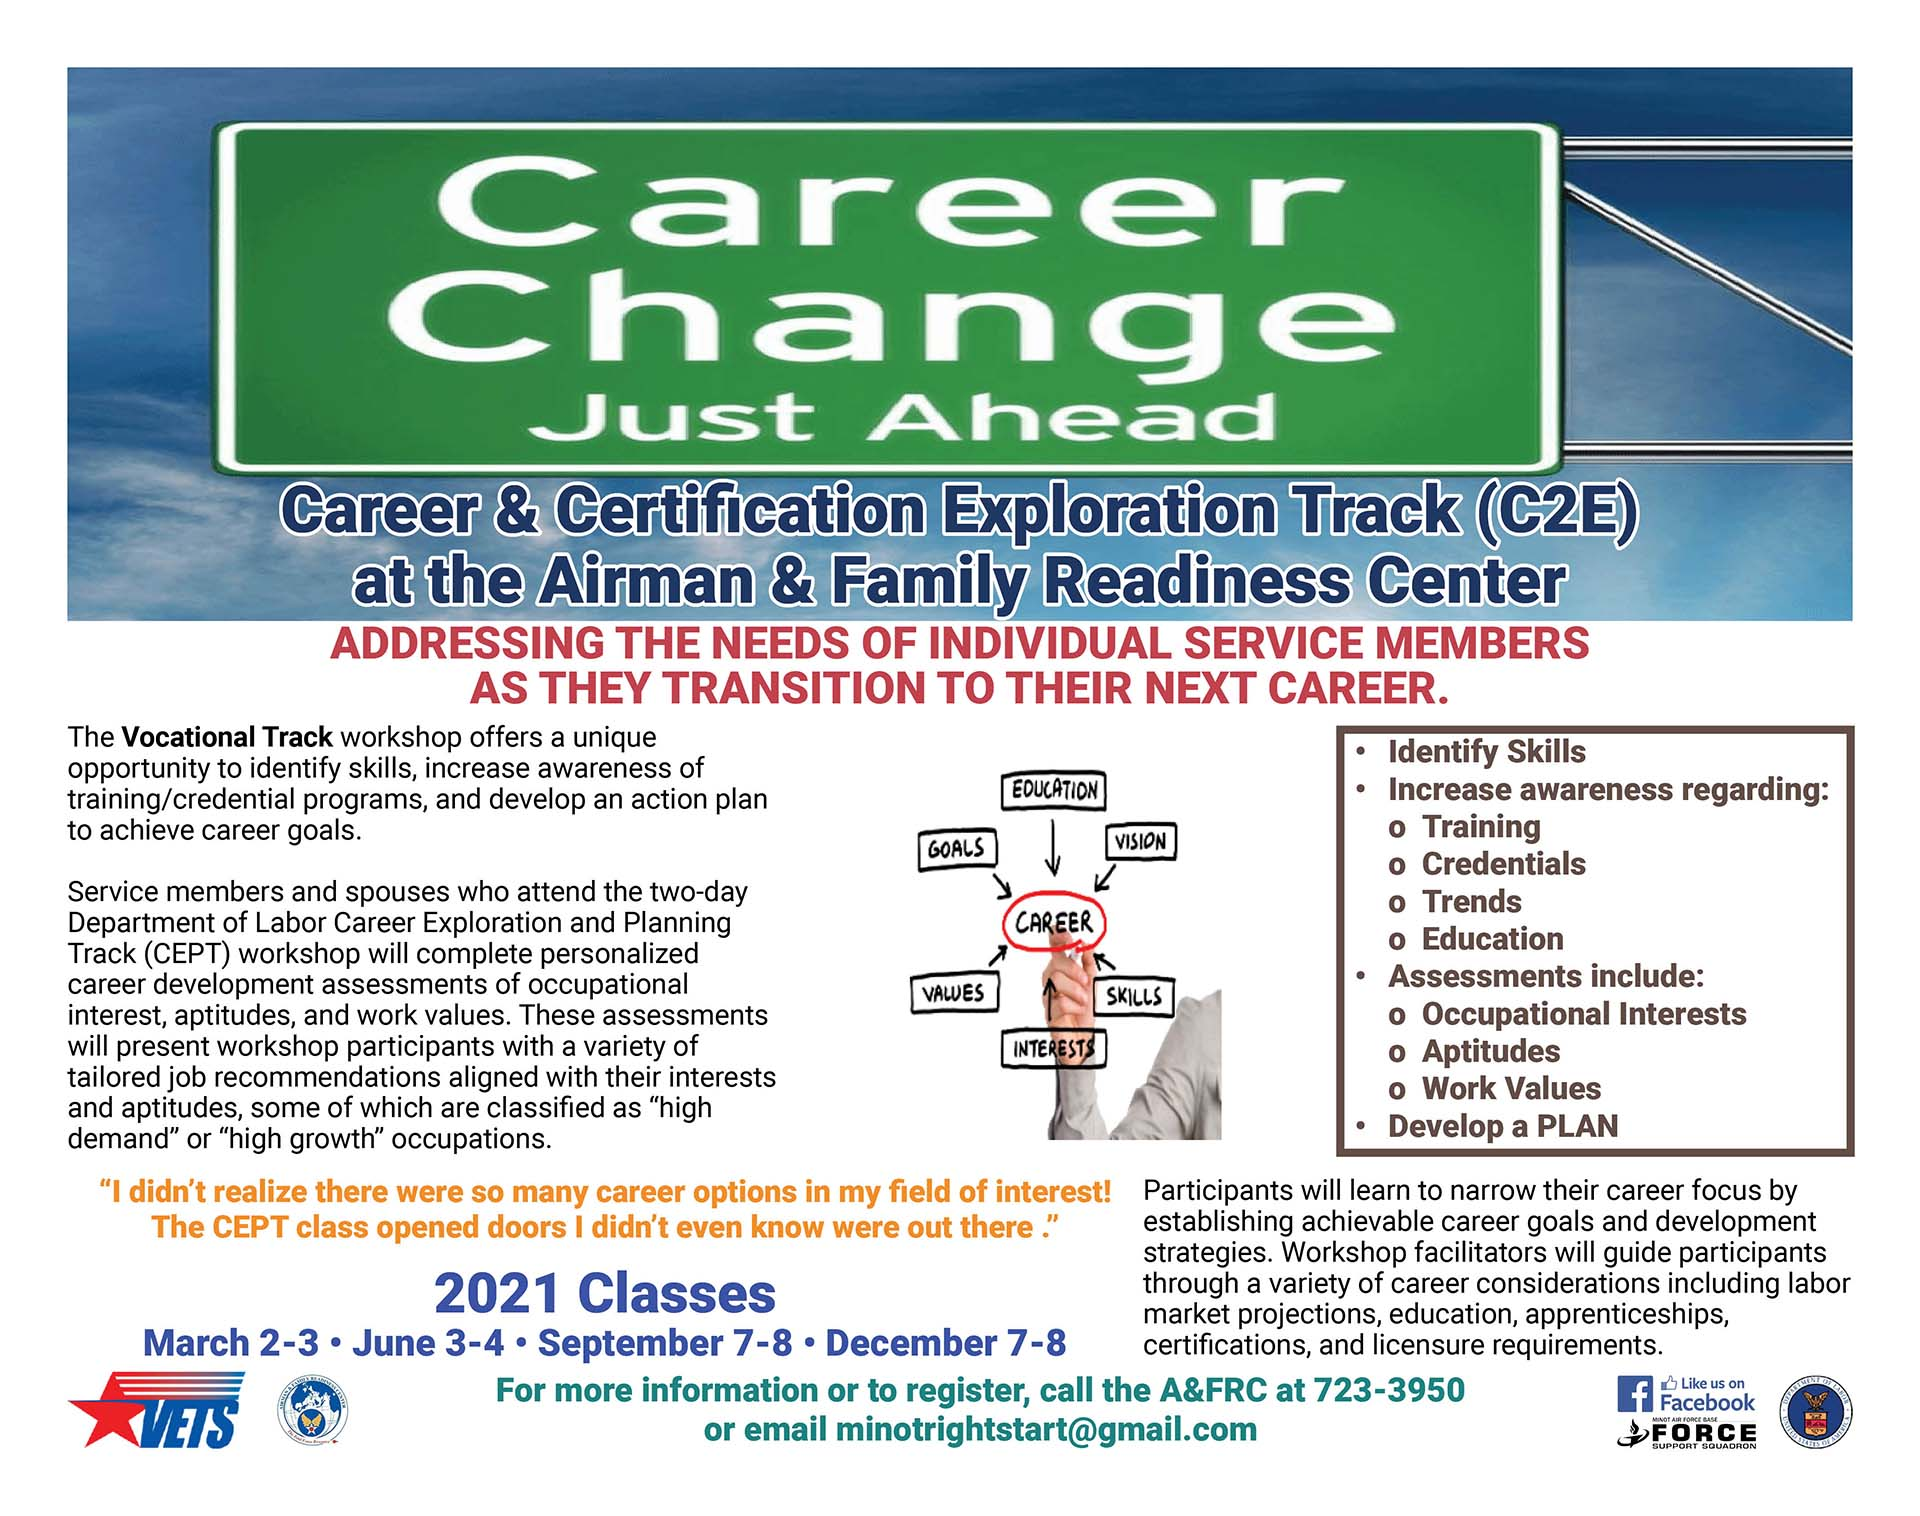 Career & Certification Exploration Track